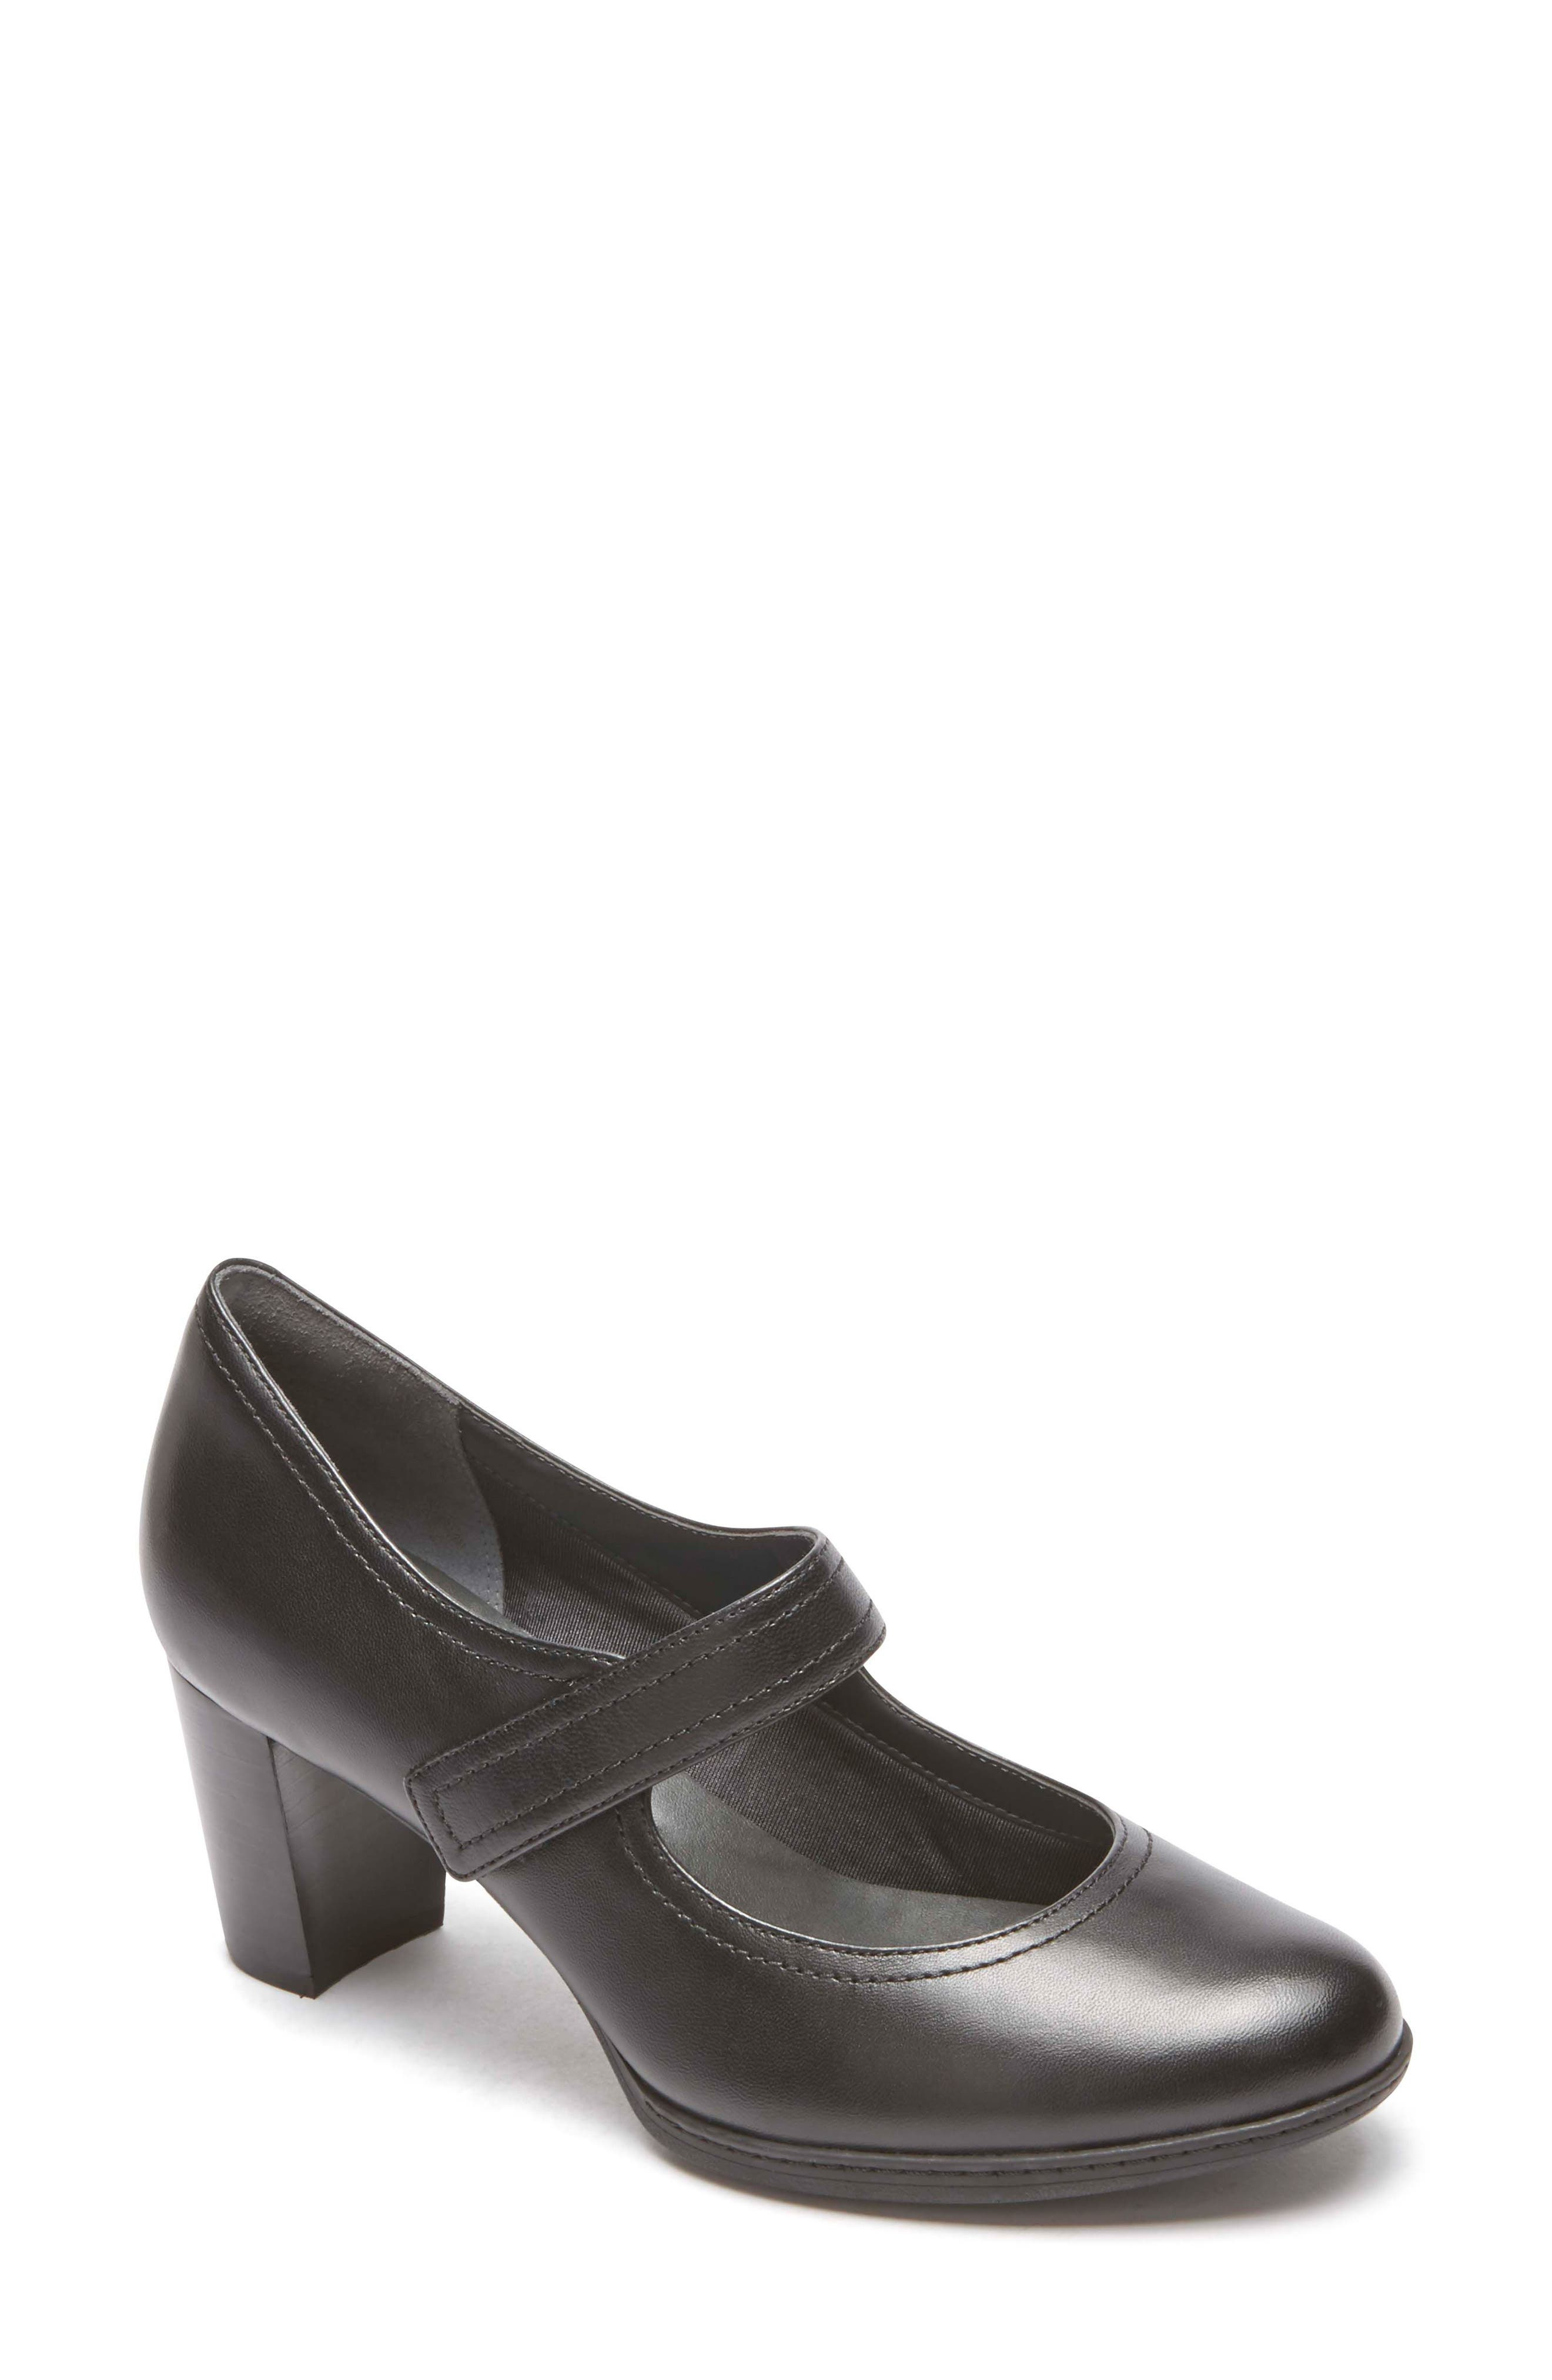 Alternate Image 1 Selected - Rockport Chaya Mary Jane Pump (Women)